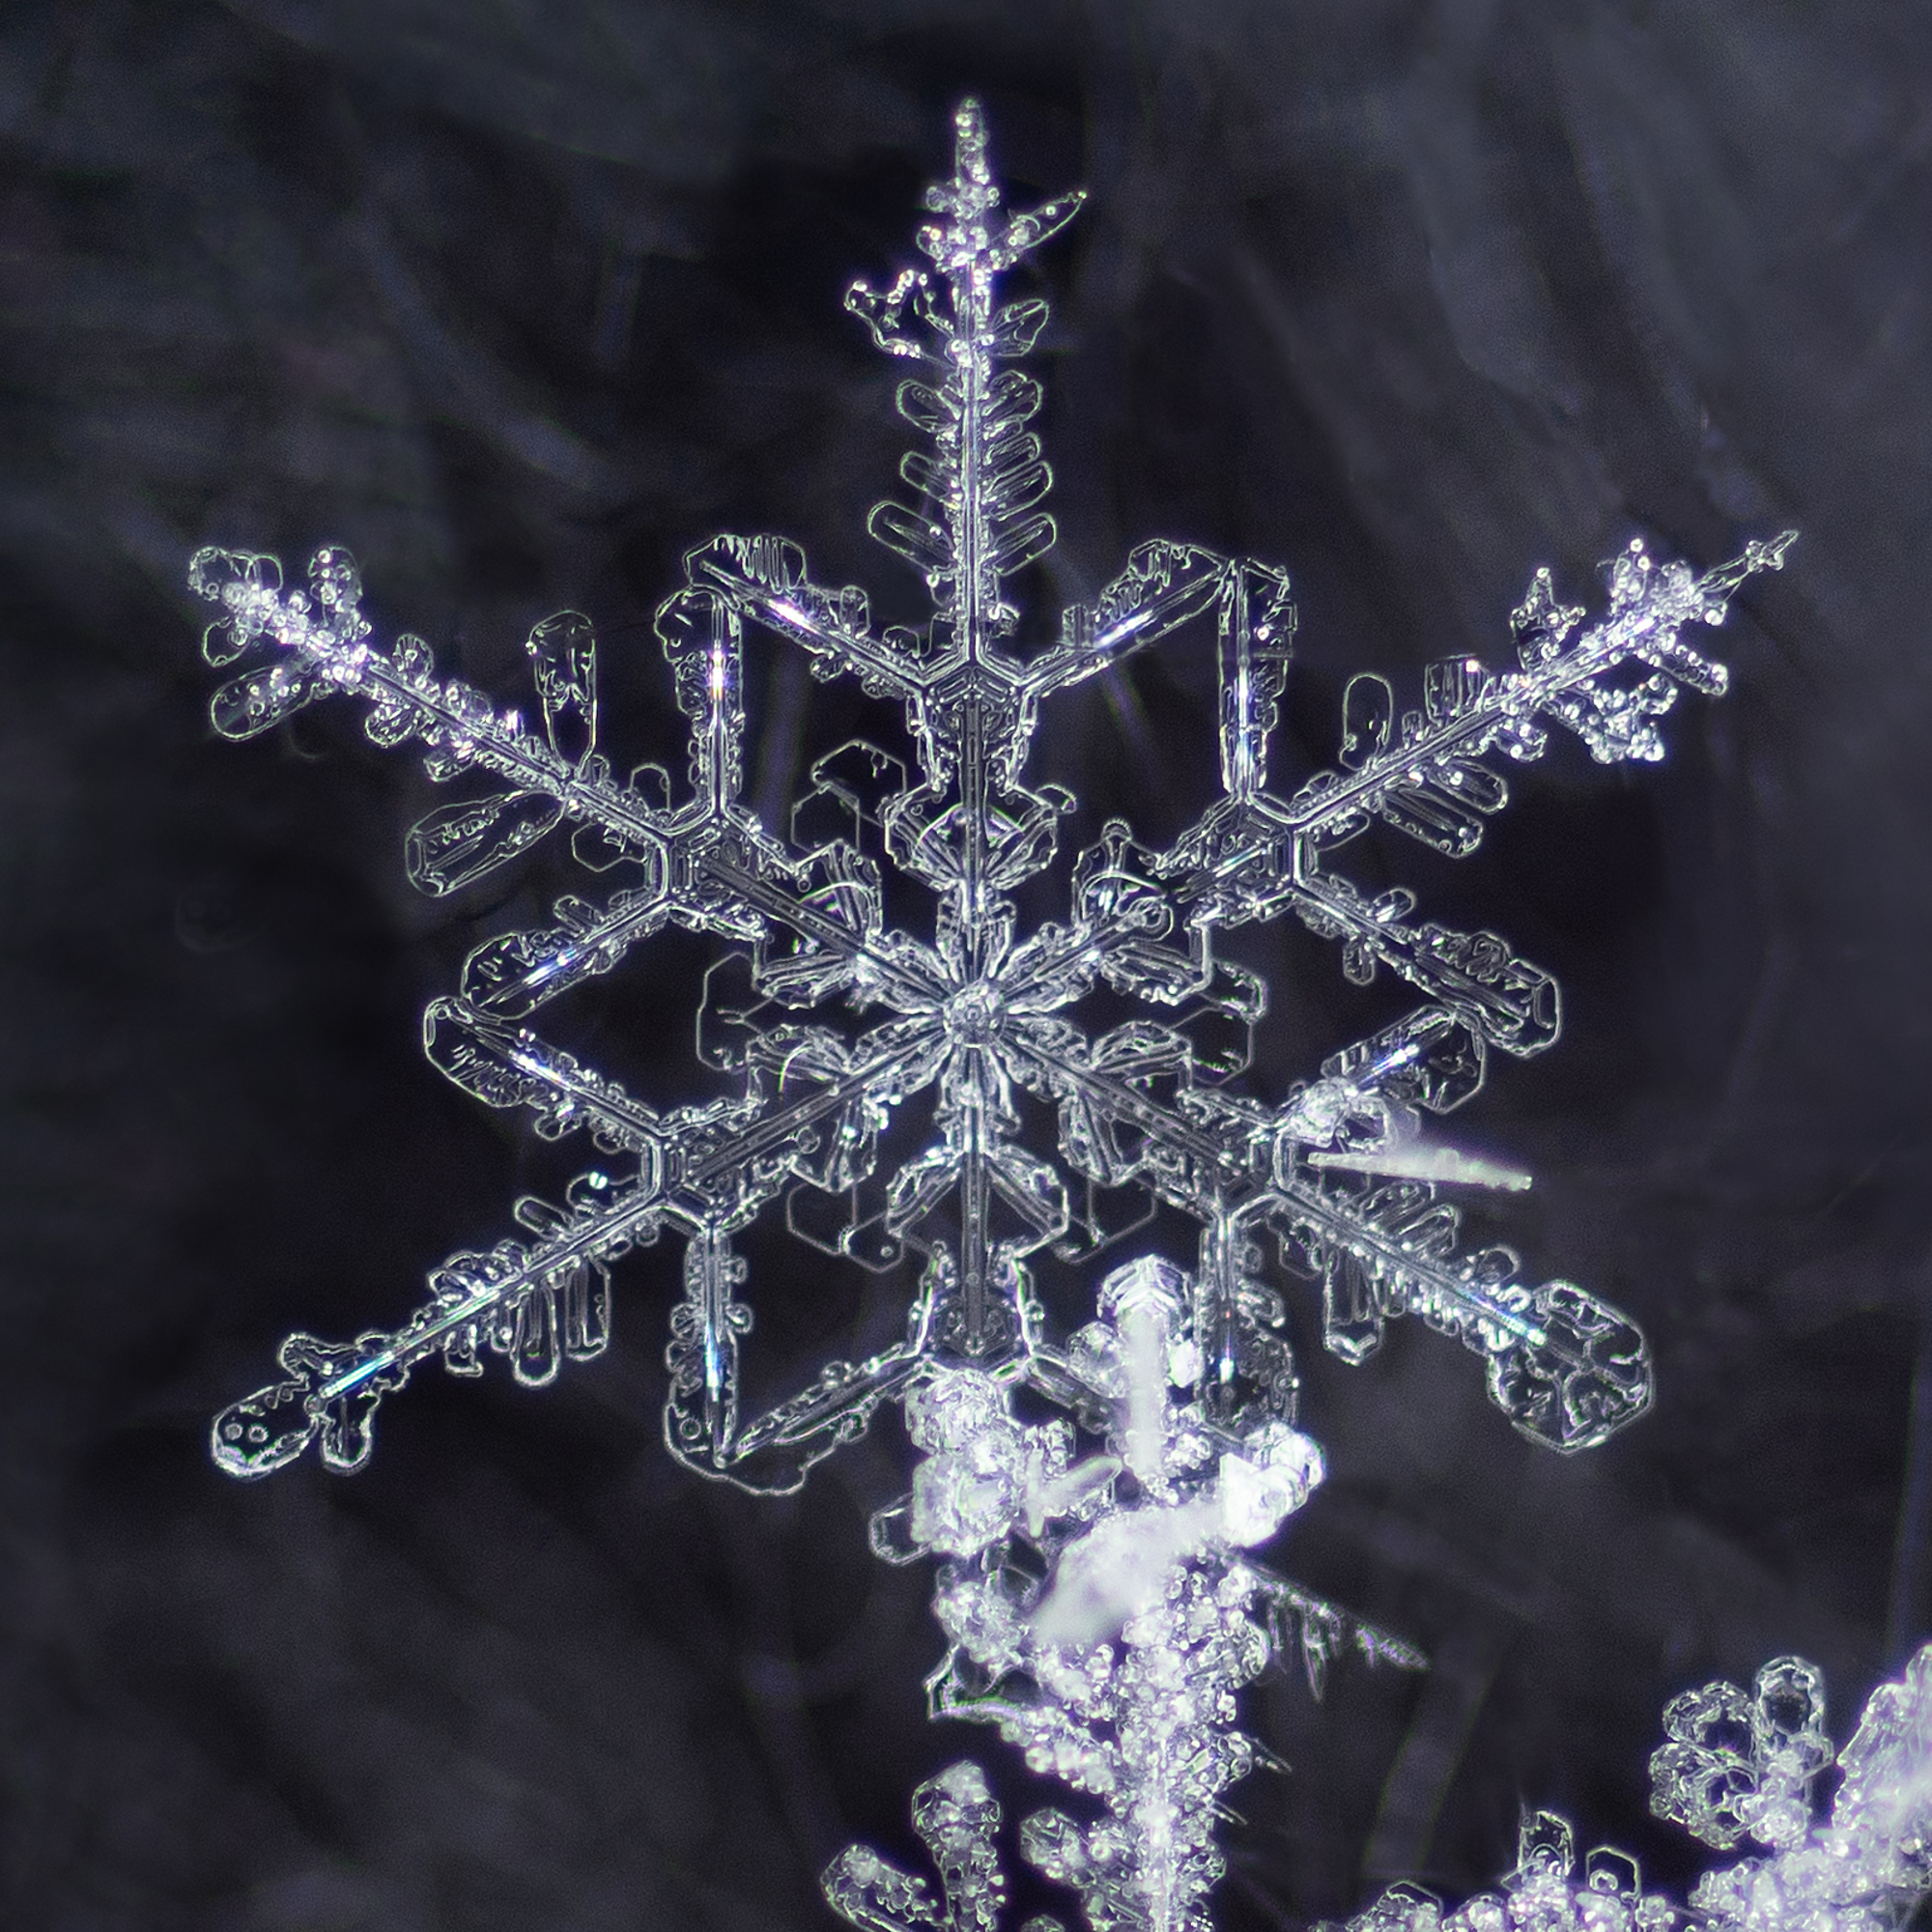 snowflake photography sample 1-3.jpg